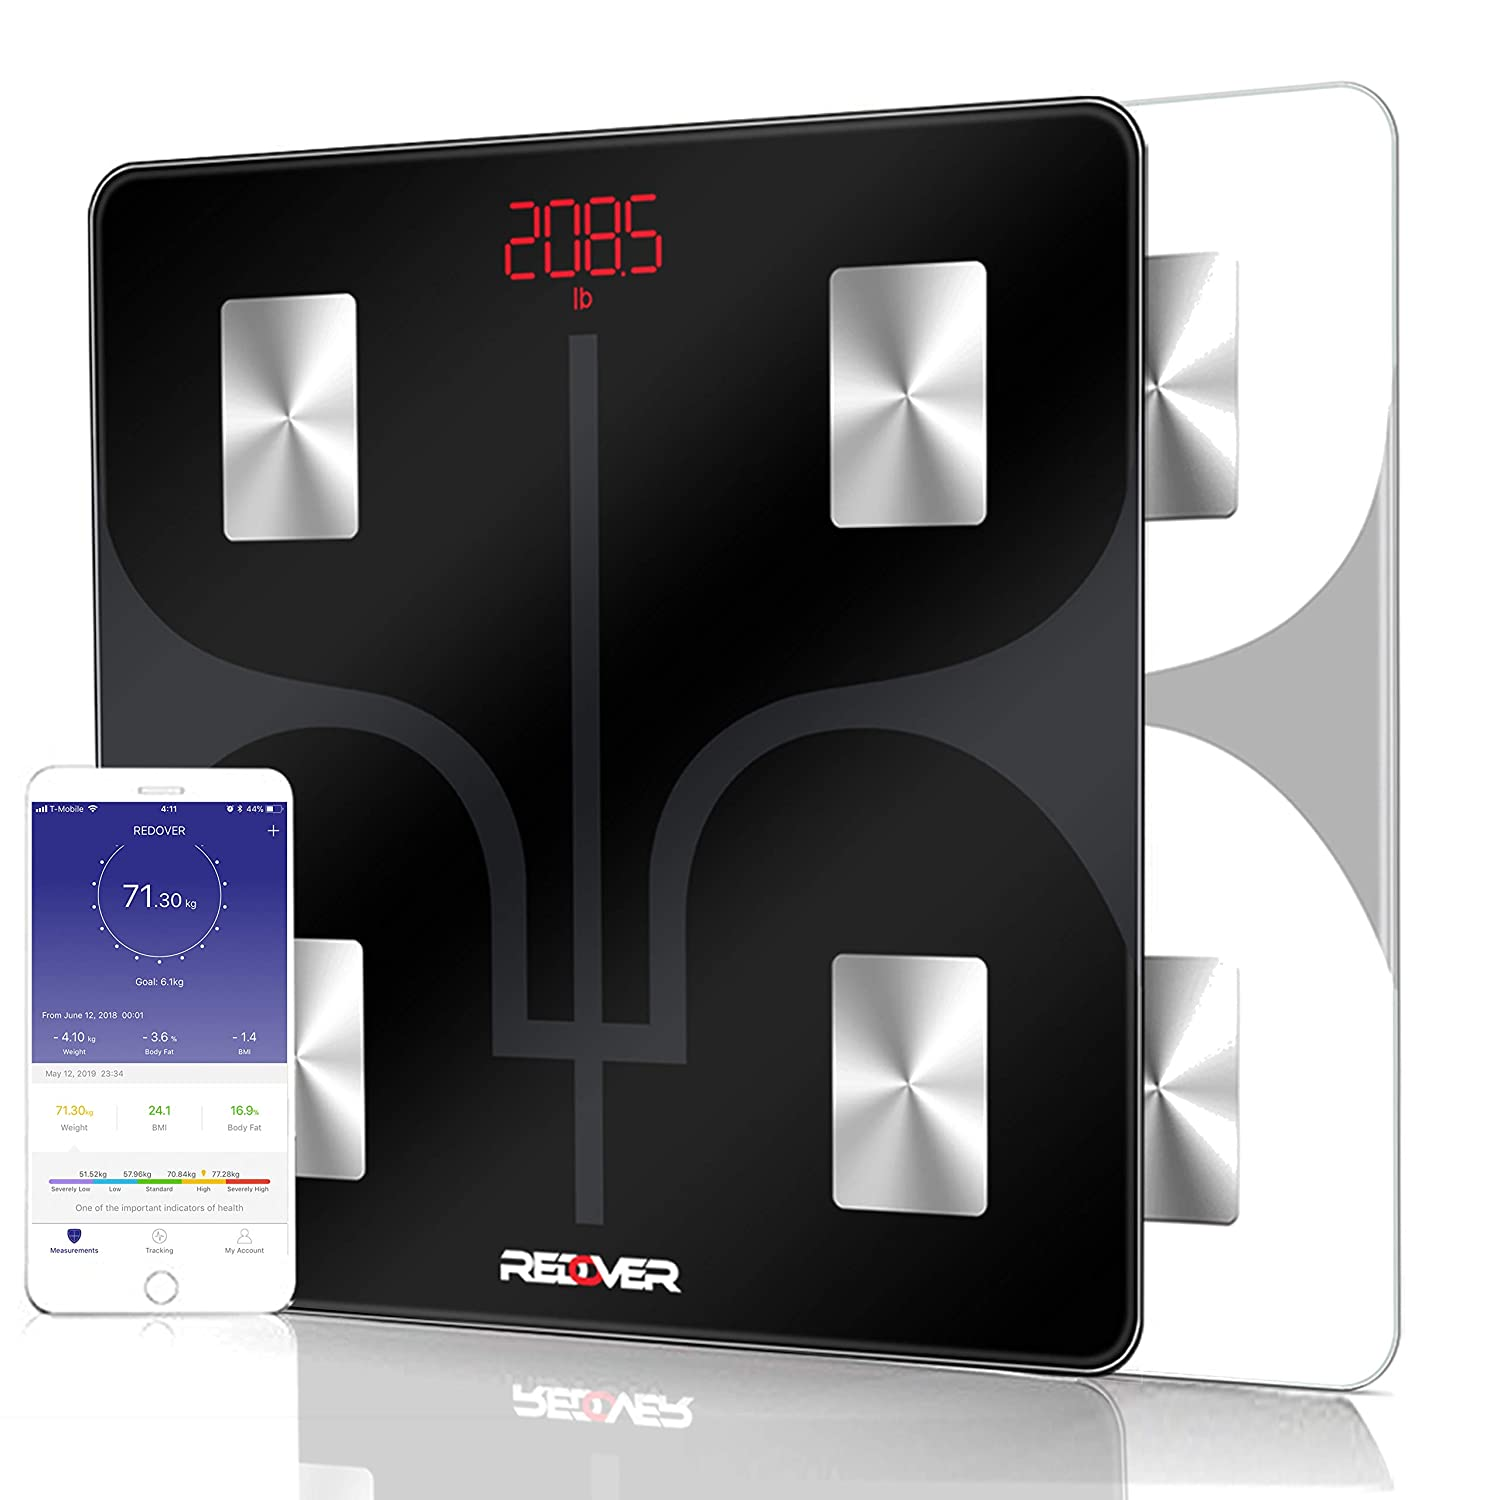 REDOVER-Bluetooth Body Fat Scale with Free iOS Android App, Smart Wireless Digital Bathroom Scale, Body Composition Analyzer for Body Weight, Body Fat, Muscle Mass, BMI, BMR and More, 400lb Black